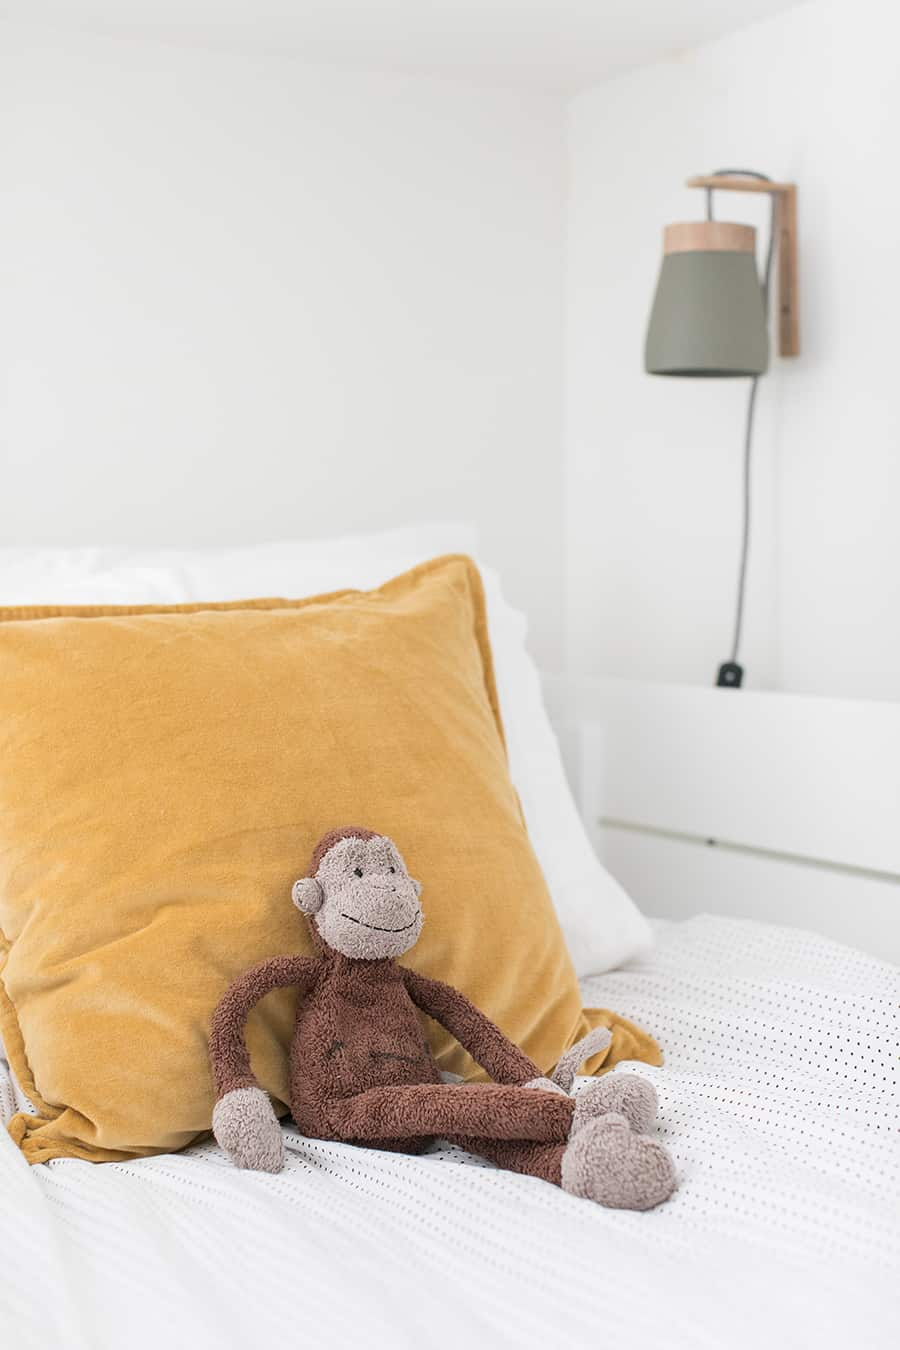 Kids bedroom with velvet yellow pillows and a stuffed monkey.